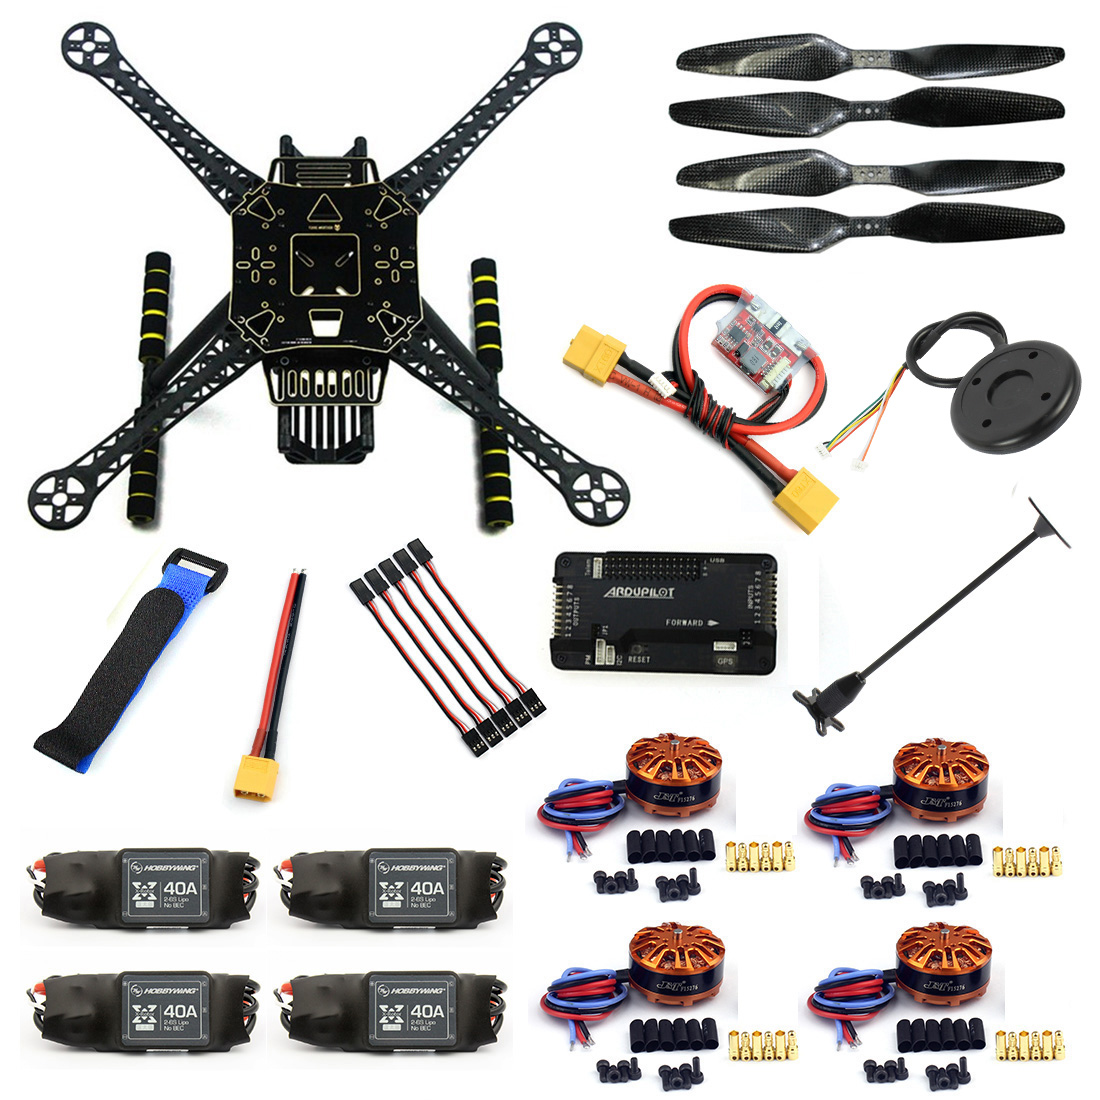 DIY RC Aircraft FPV Drone S600 Quadcopter Frame Kit with APM 2 8 Flight Control 40A